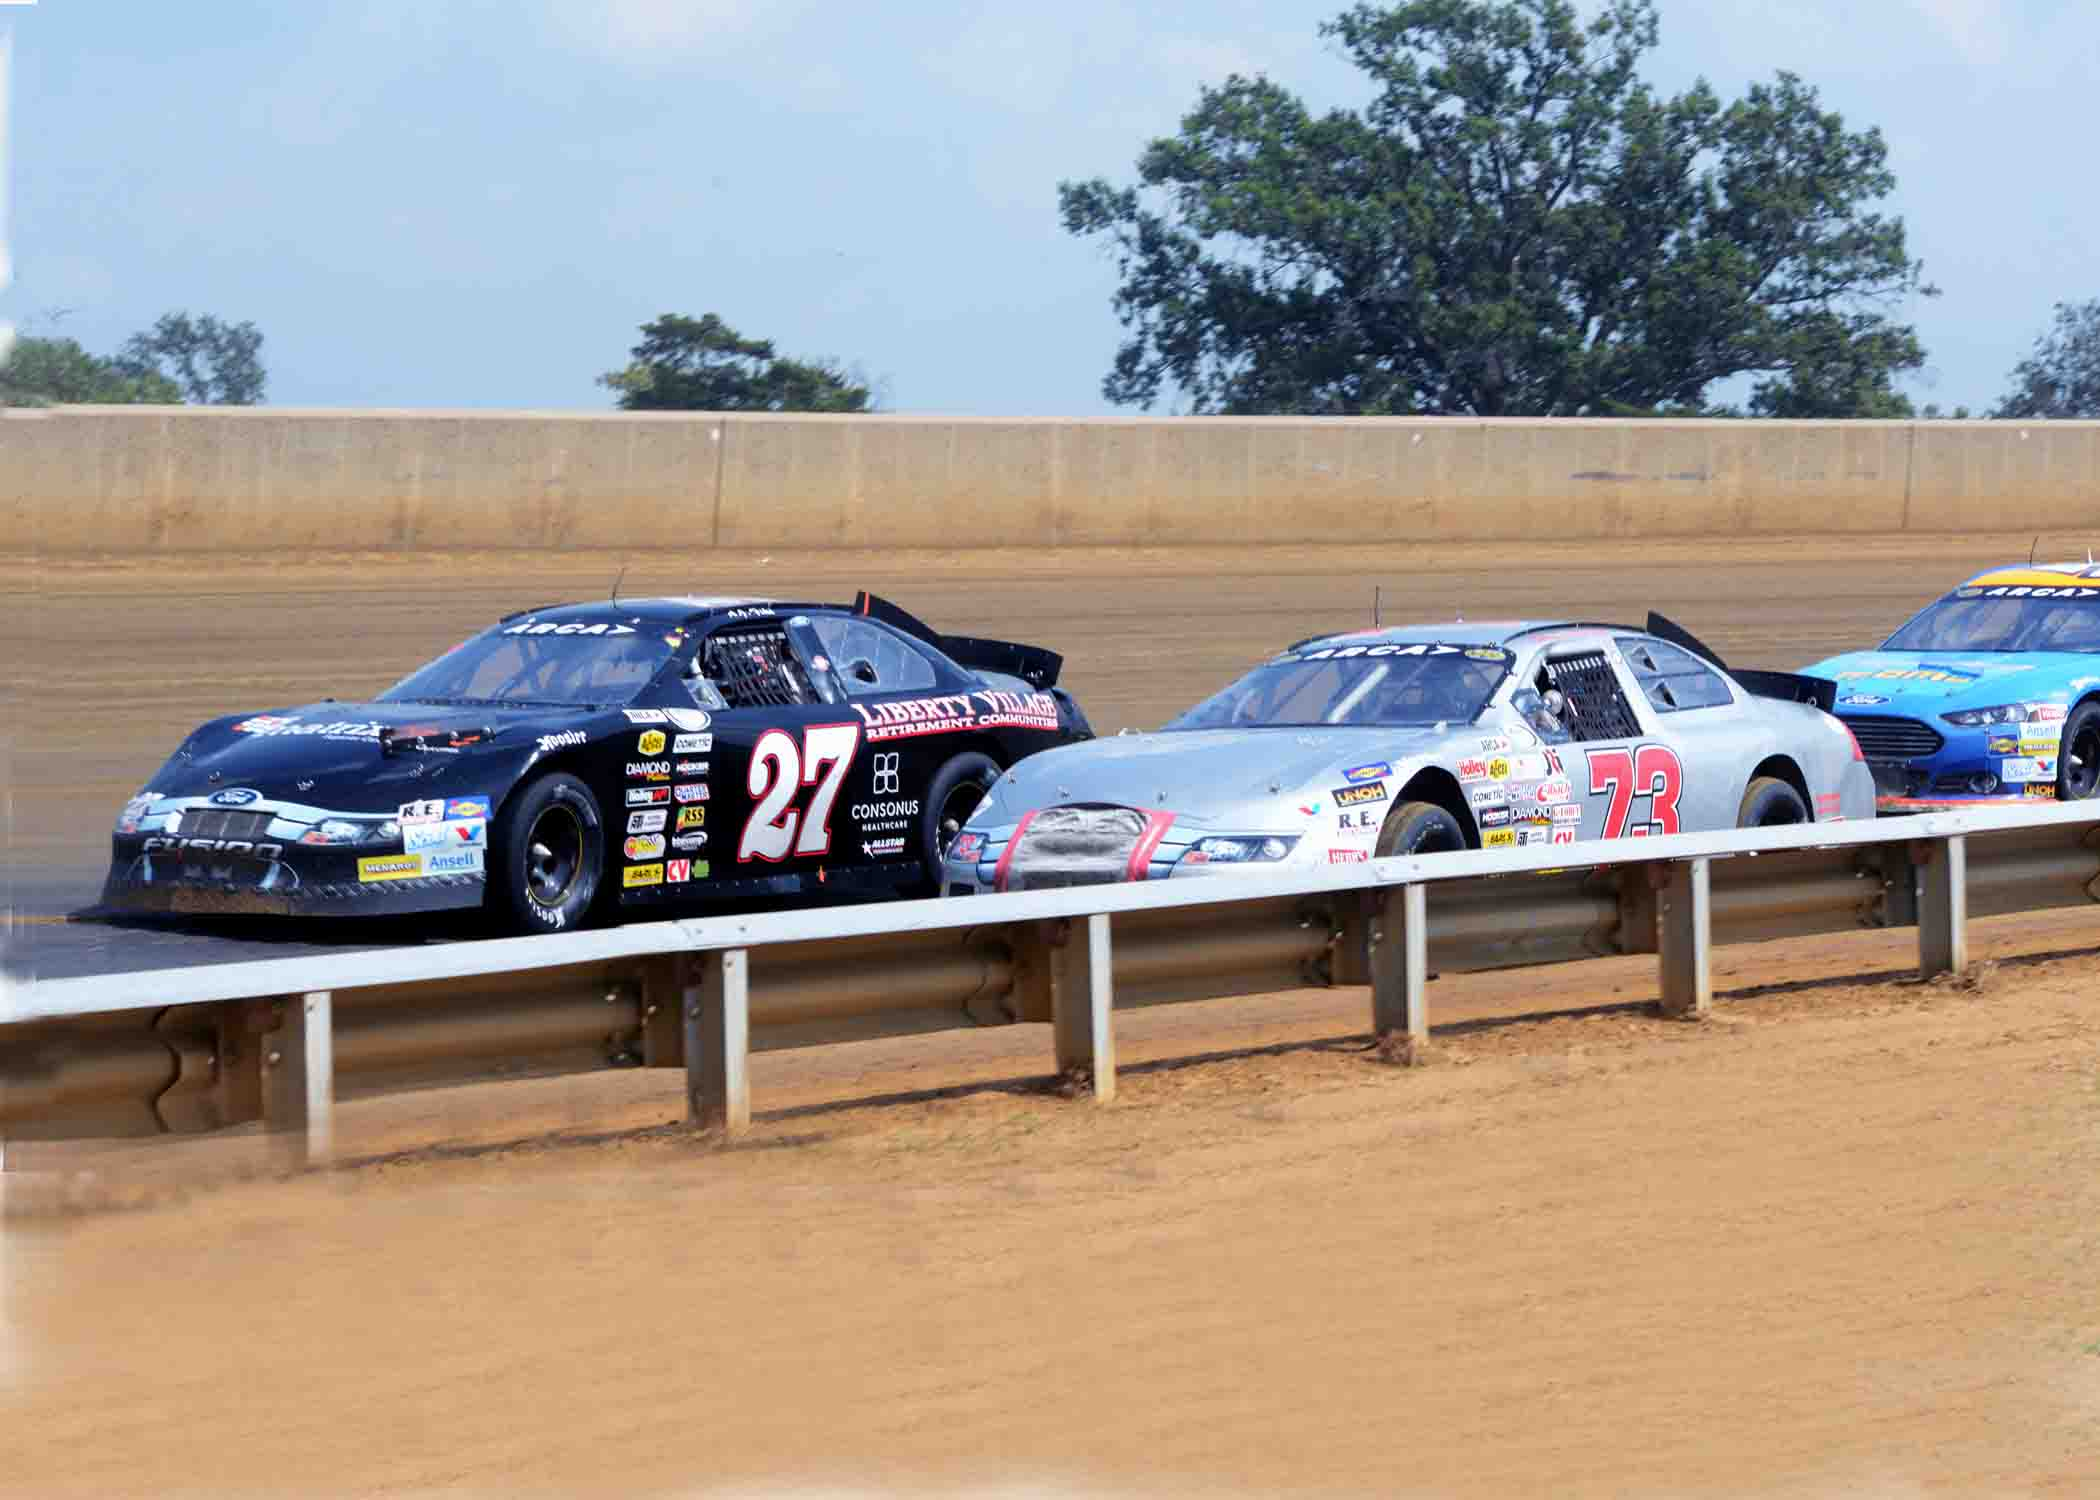 70th Anniversary Of First Auto Race On Duquoin Magic Mile